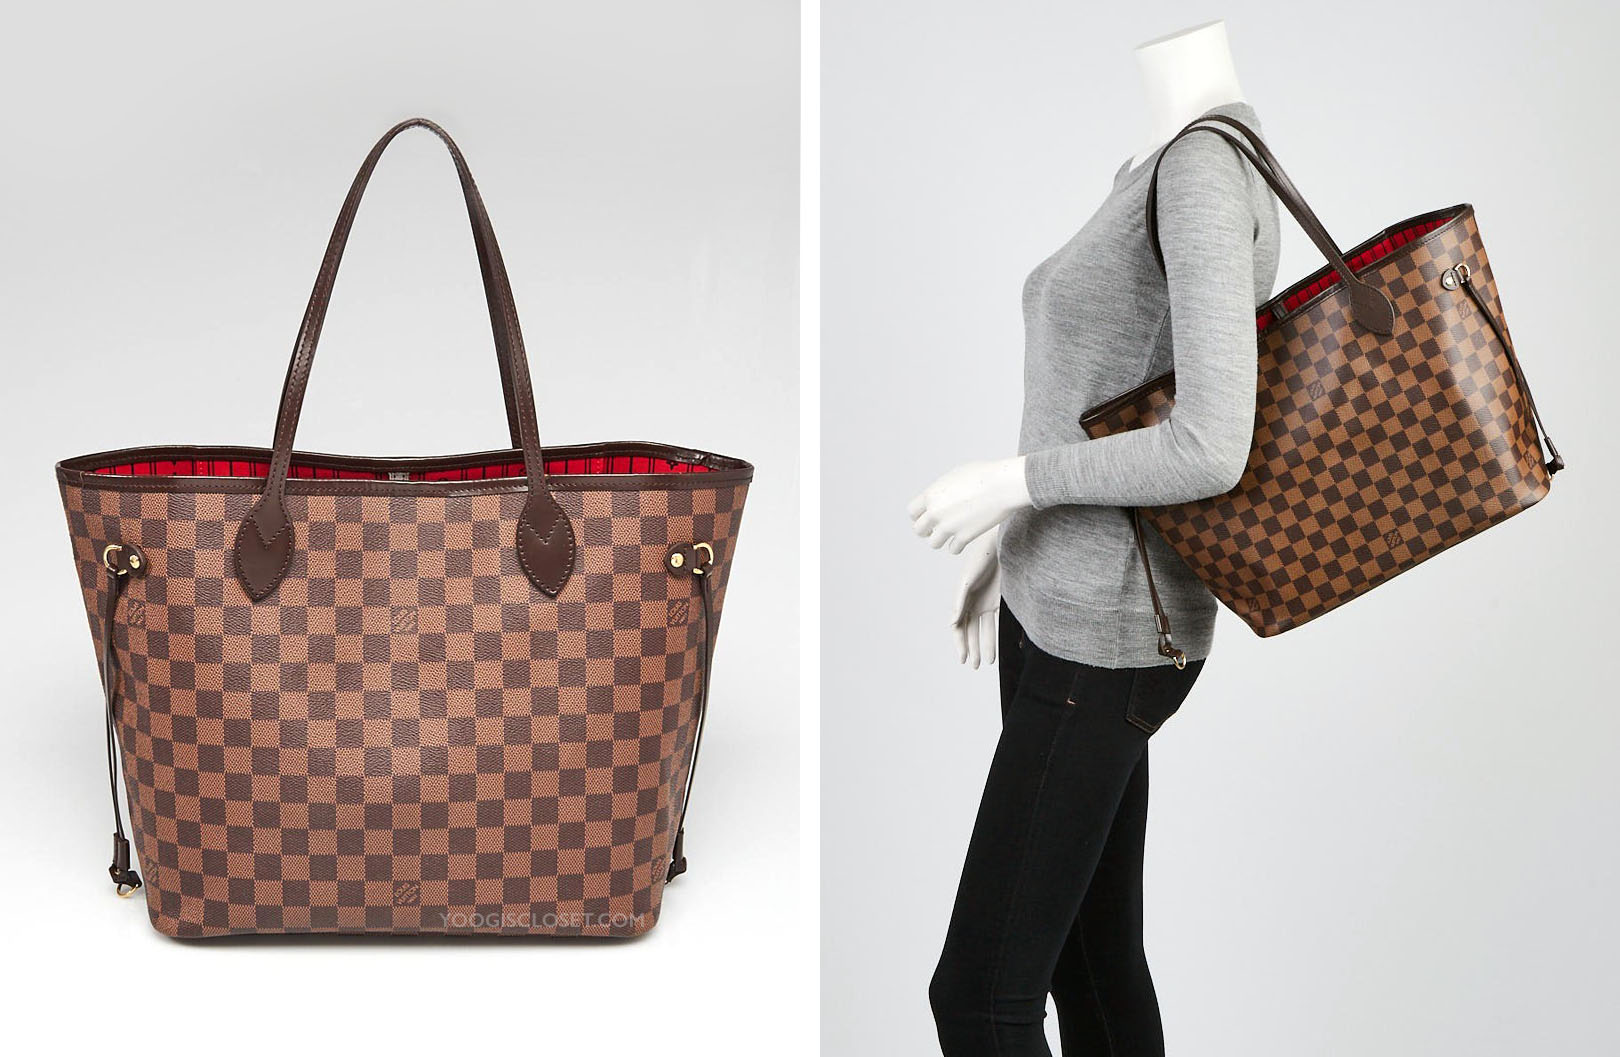 0350c729dc77 Louis Vuitton Neverfull Buying Guide - Yoogi s Closet Blog